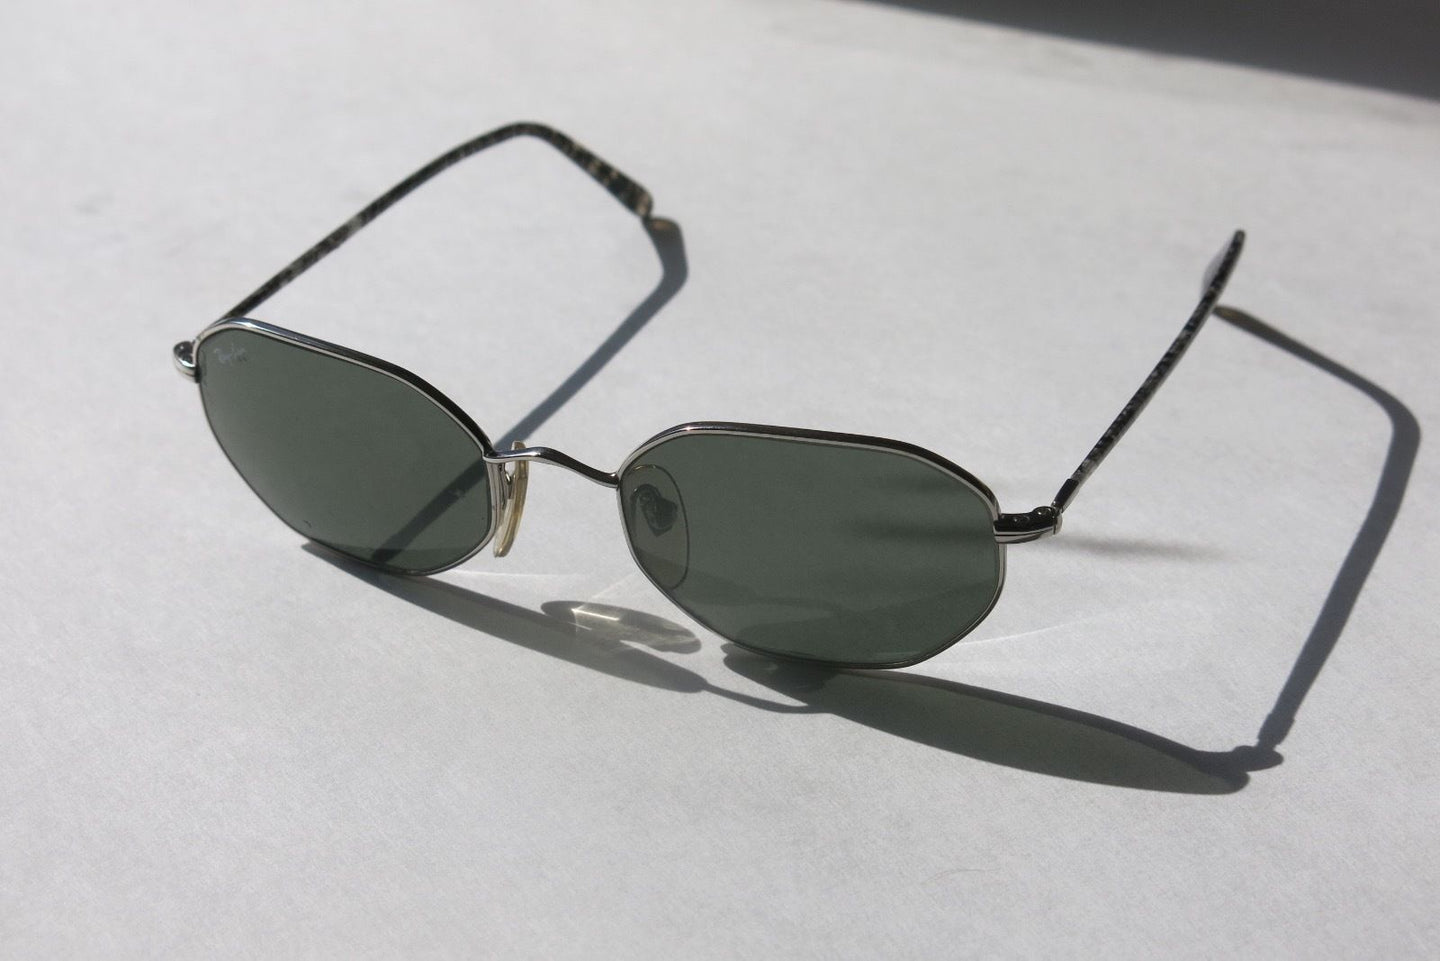 Ray Ban Sunglasses W 2551 - Friedman & Sons